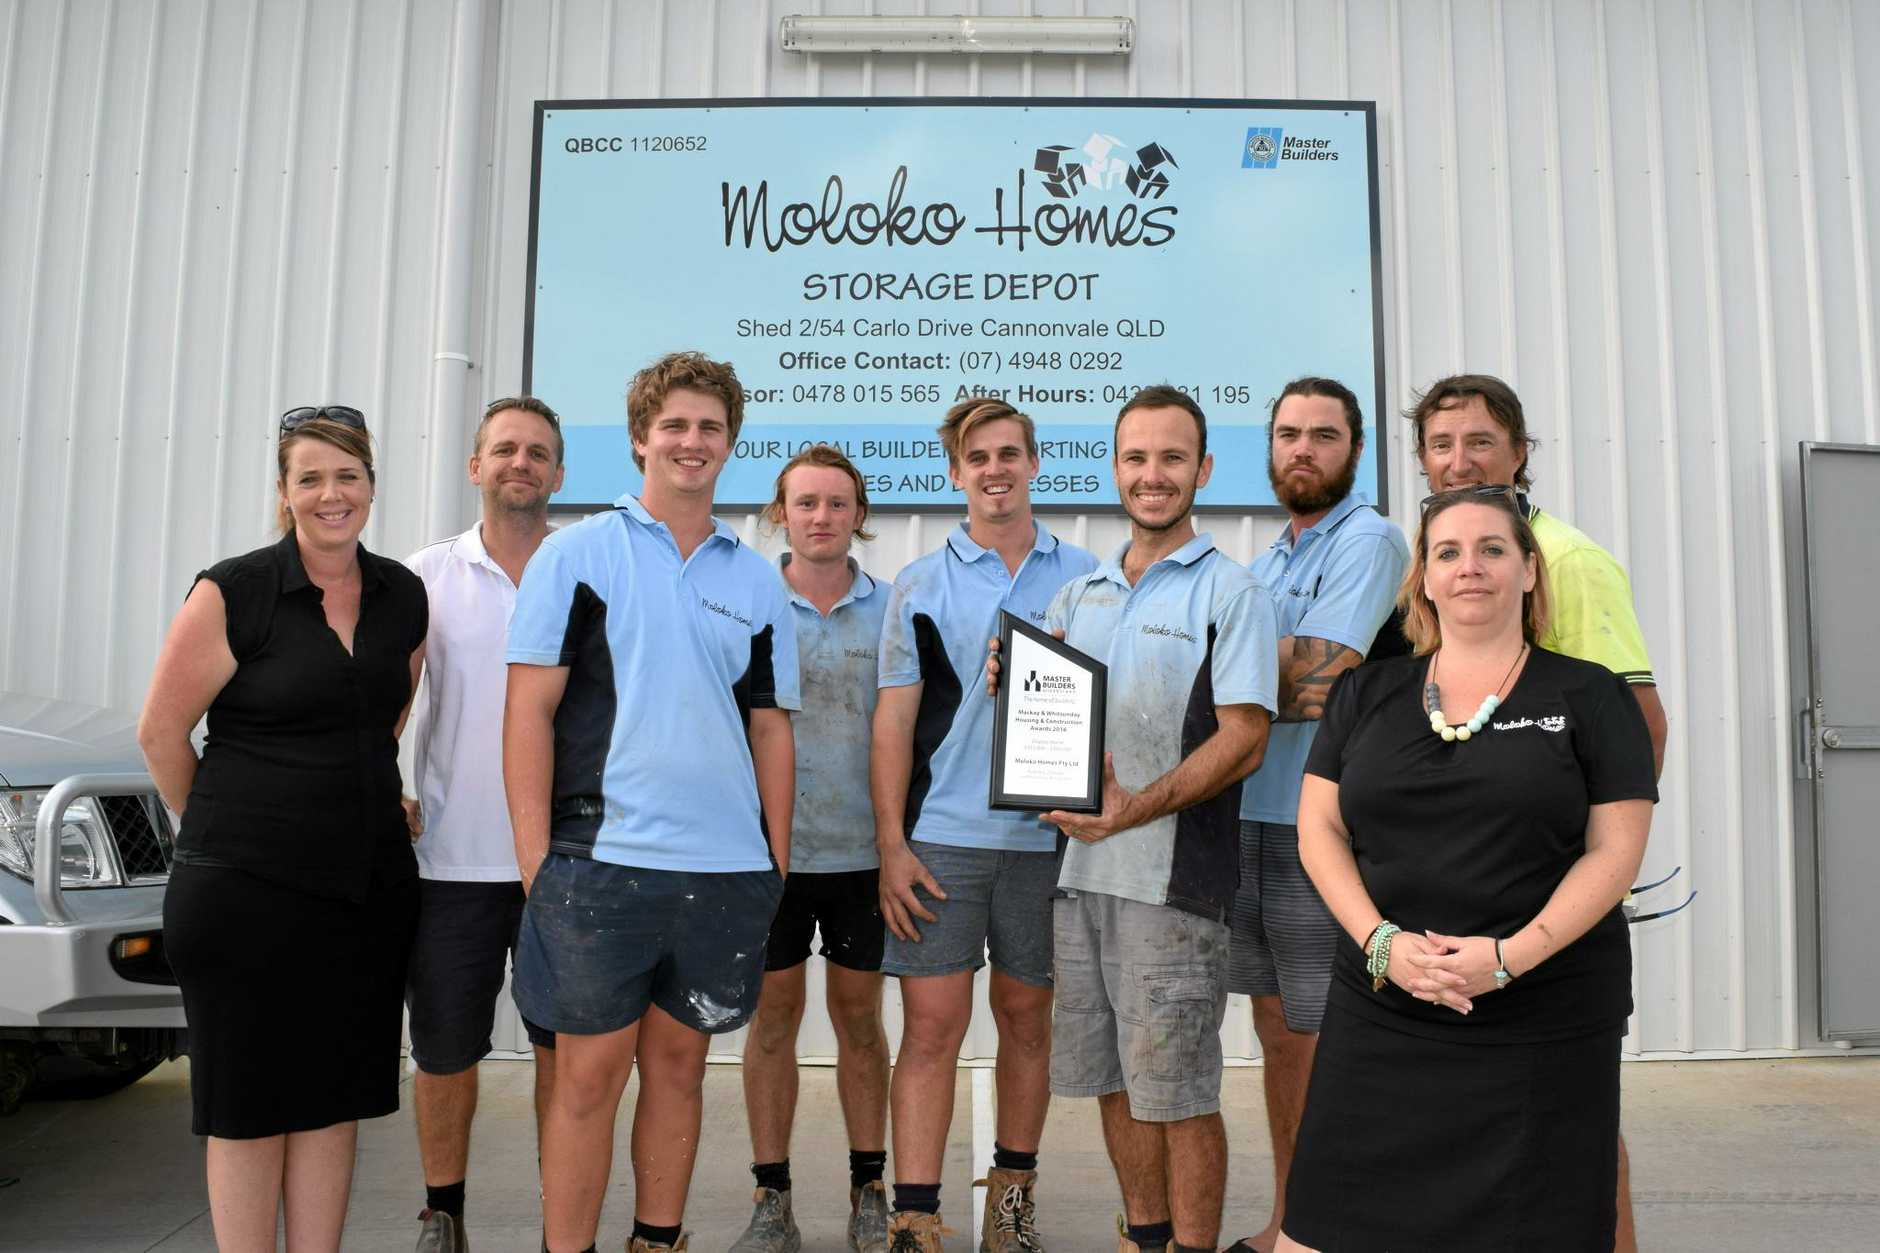 TOP JOB: Moloko Homes Whitsundays directors Jessica and Gavin Smith, apprentices Arthur Whitton and Ollie Annear, carpenters Tyler Newton, Micah Berry and Peter Wheeler, supervisor Andrew Kronk and office manager Lisa Phillips.